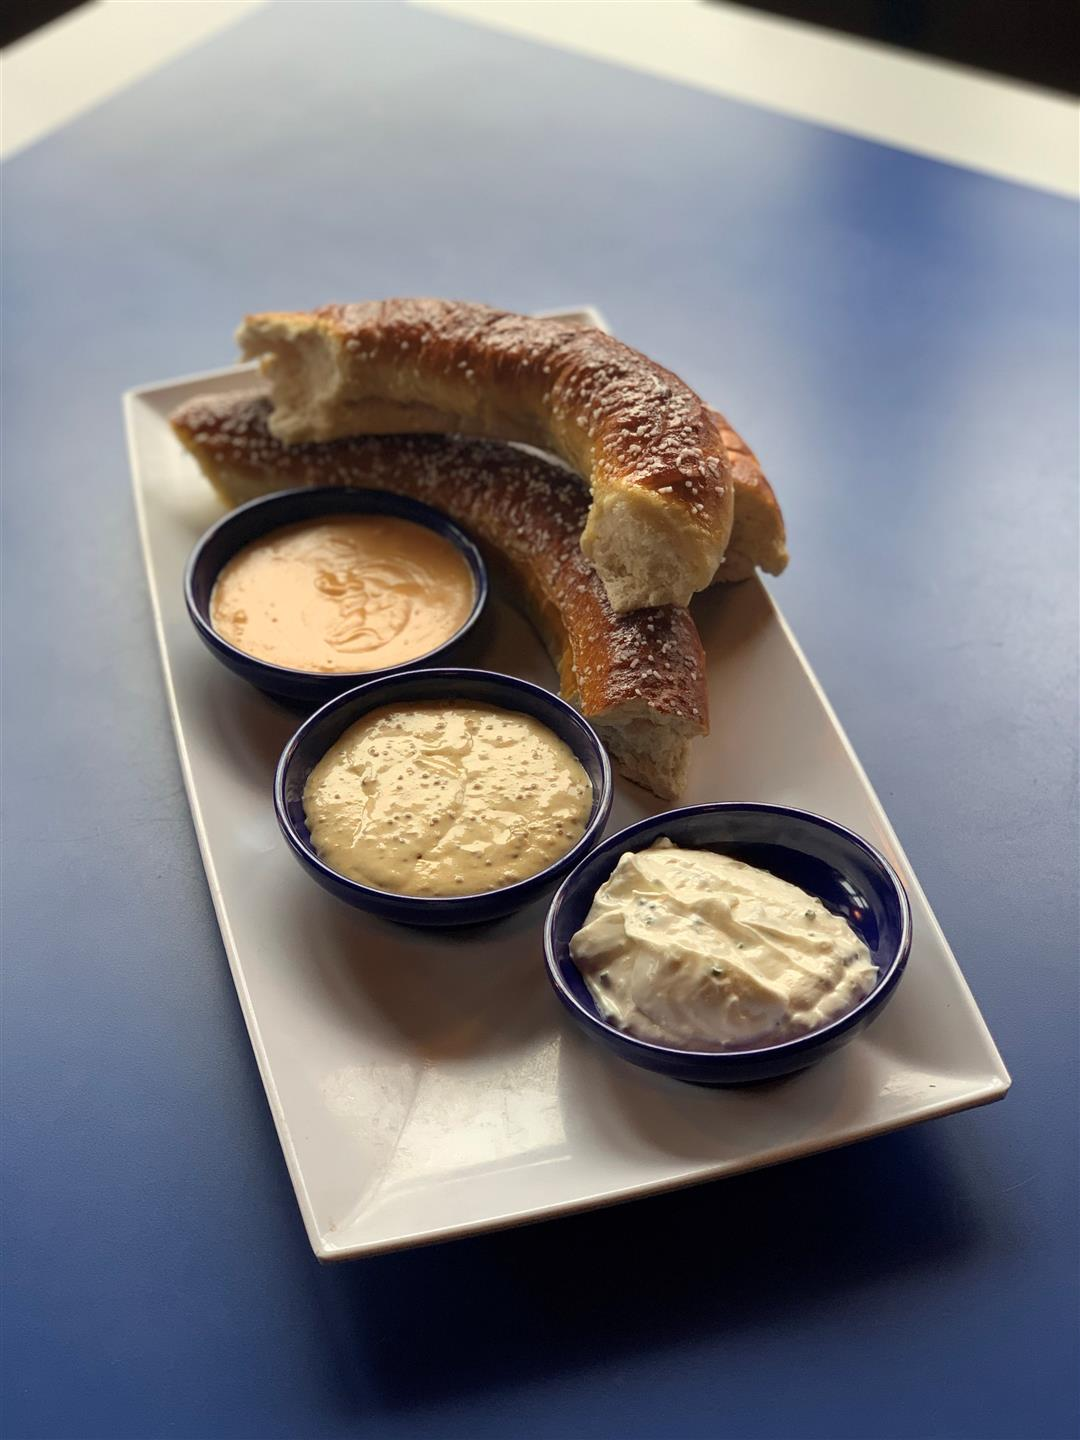 hot pretzel pieces served with cheese sauces and different mustards